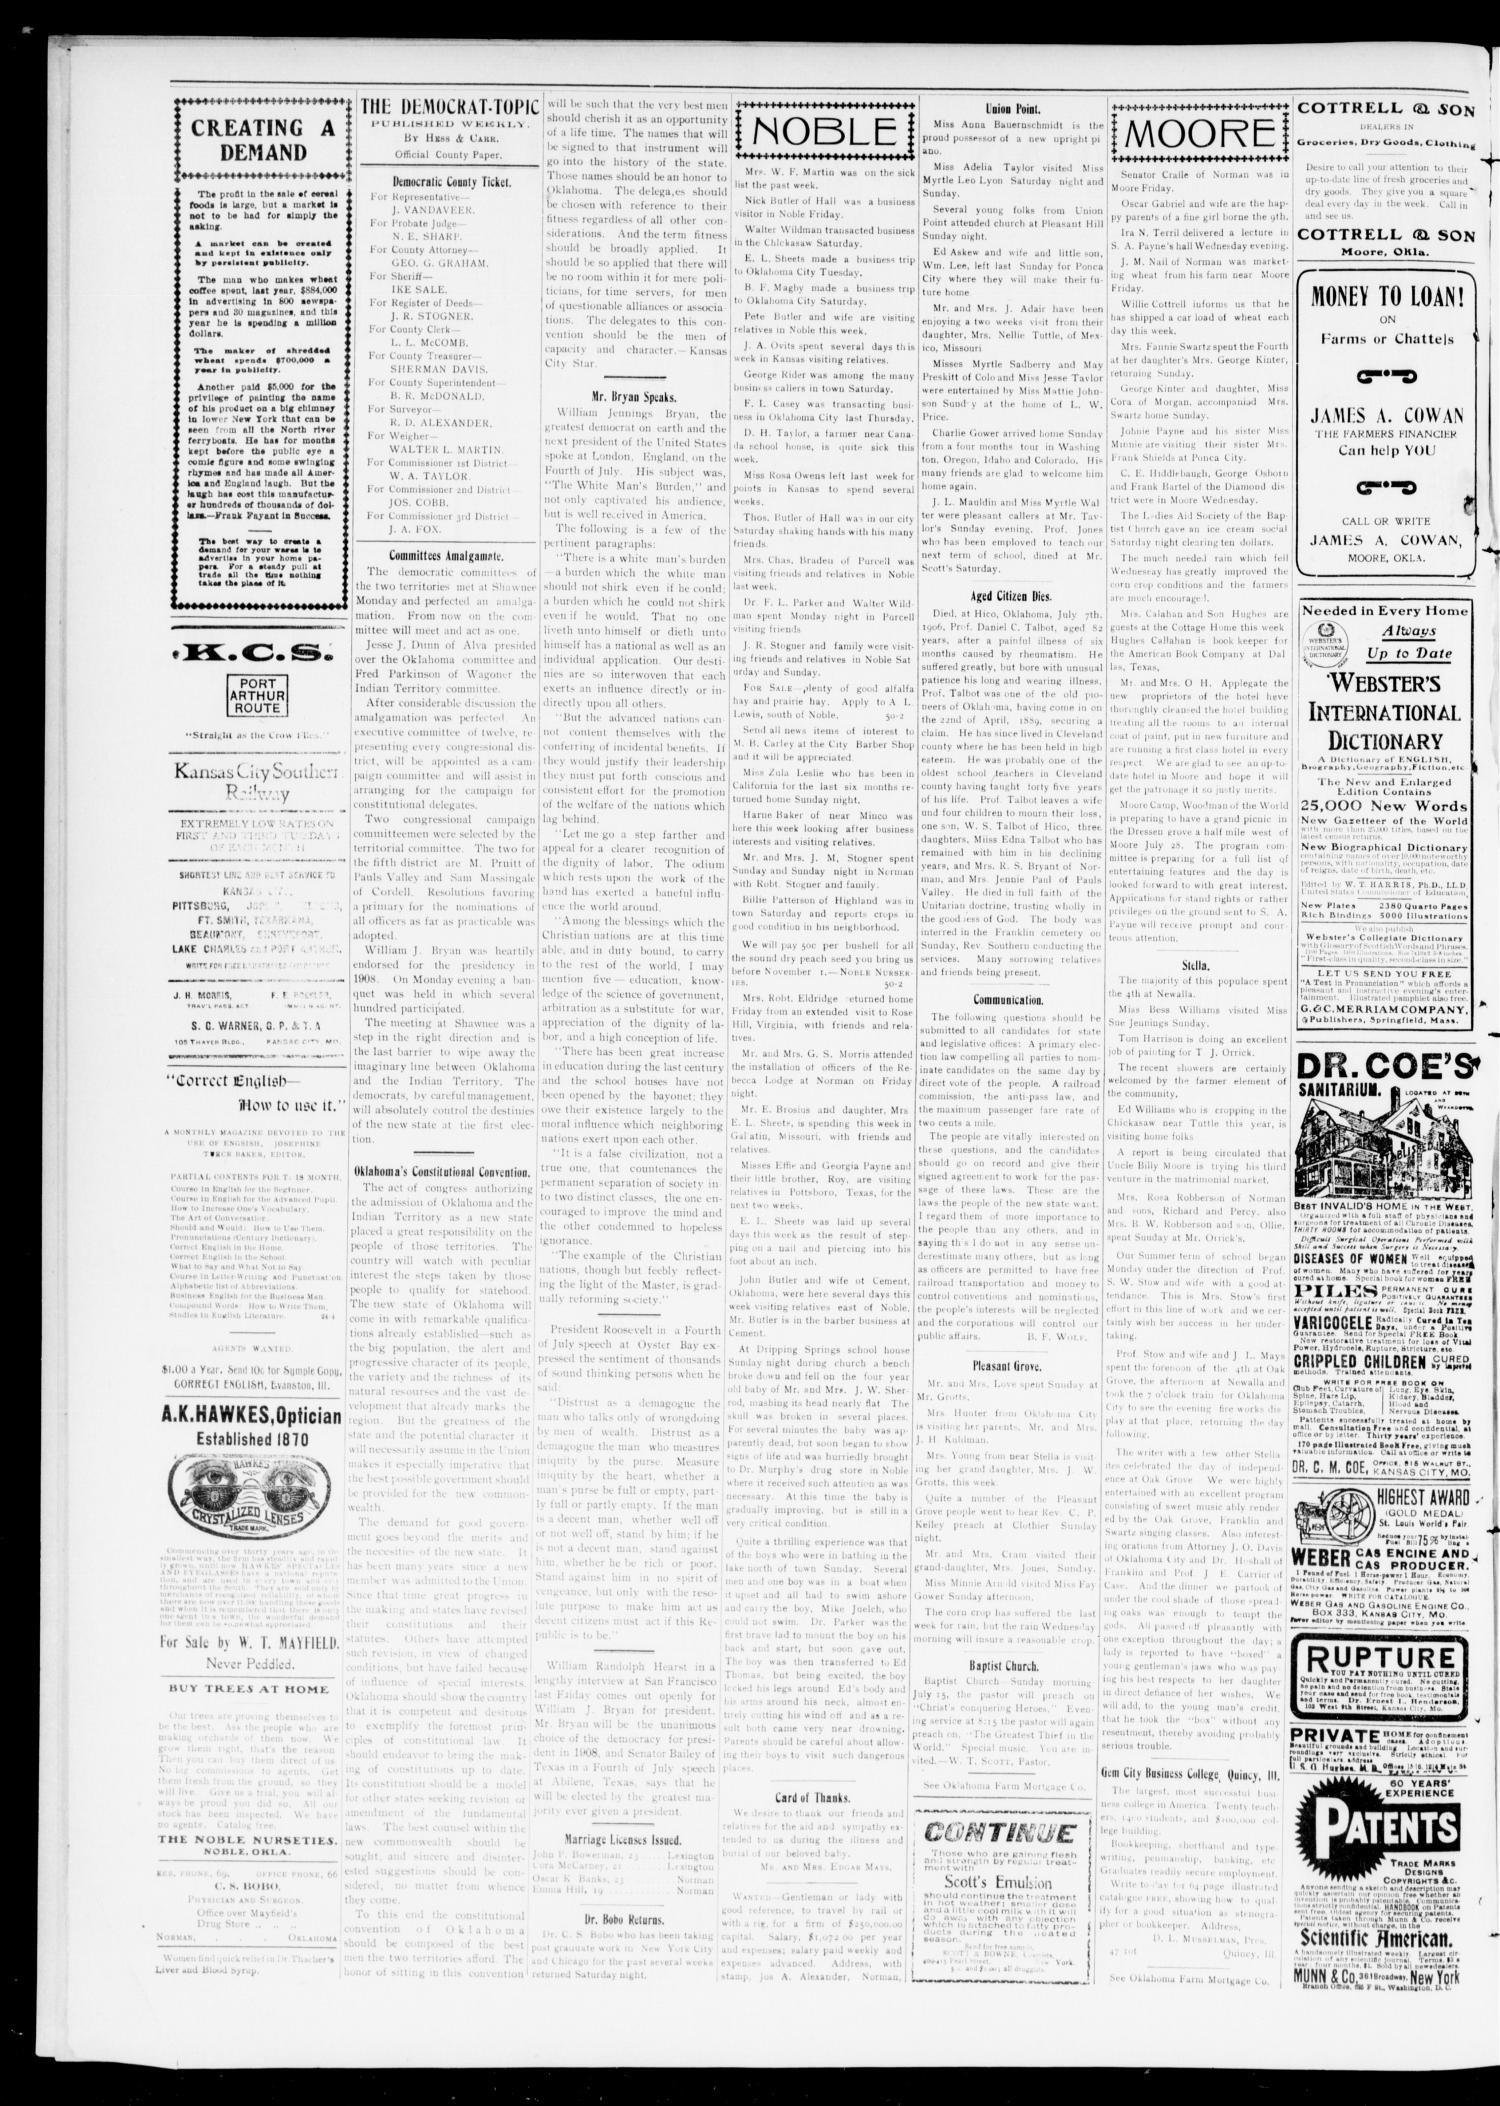 Norman Democrat--Topic. (Norman, Okla.), Vol. 15, No. 51, Ed. 1 Friday, July 13, 1906                                                                                                      [Sequence #]: 2 of 6